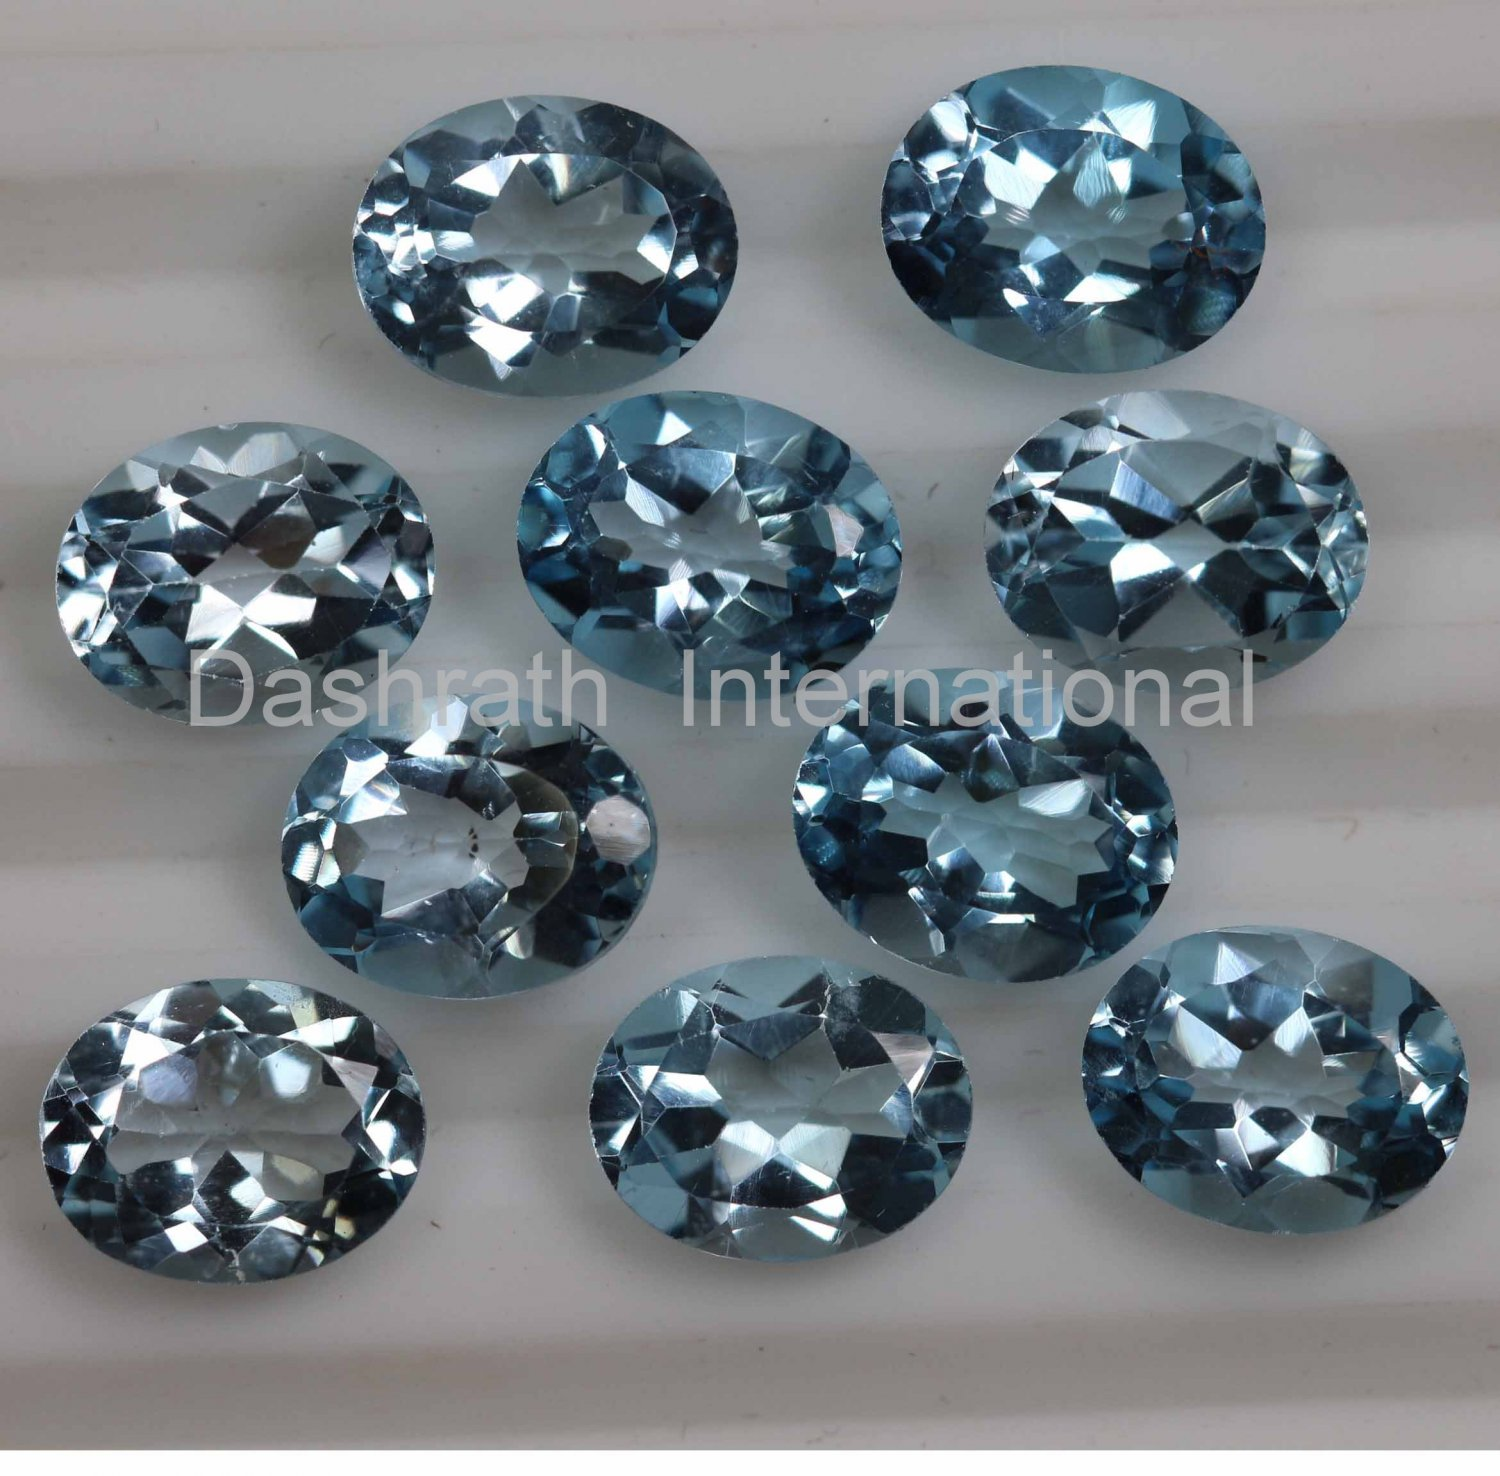 8x6mm  Natural Sky Blue Topaz Faceted Cut Oval  10 Pieces Lot  Top Quality Loose Gemstone